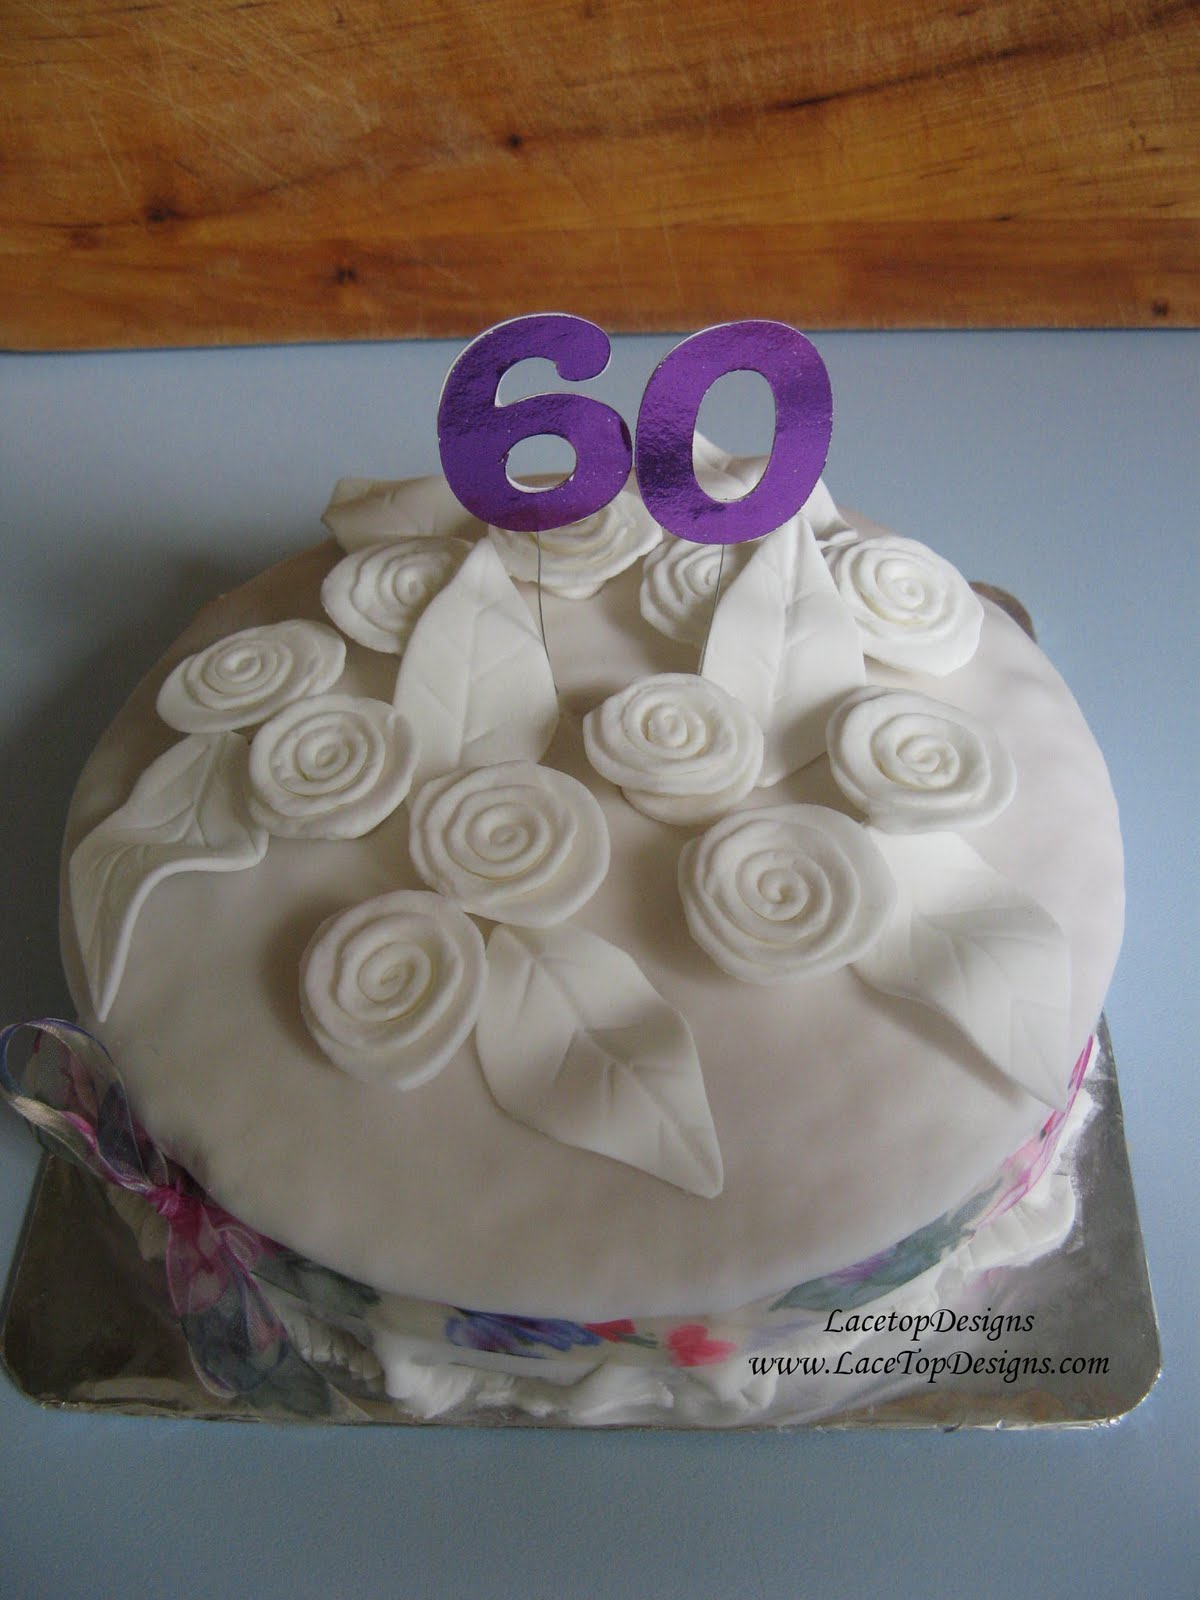 Cake Designs For 60th Birthday : 60th Birthday Cake Ideas